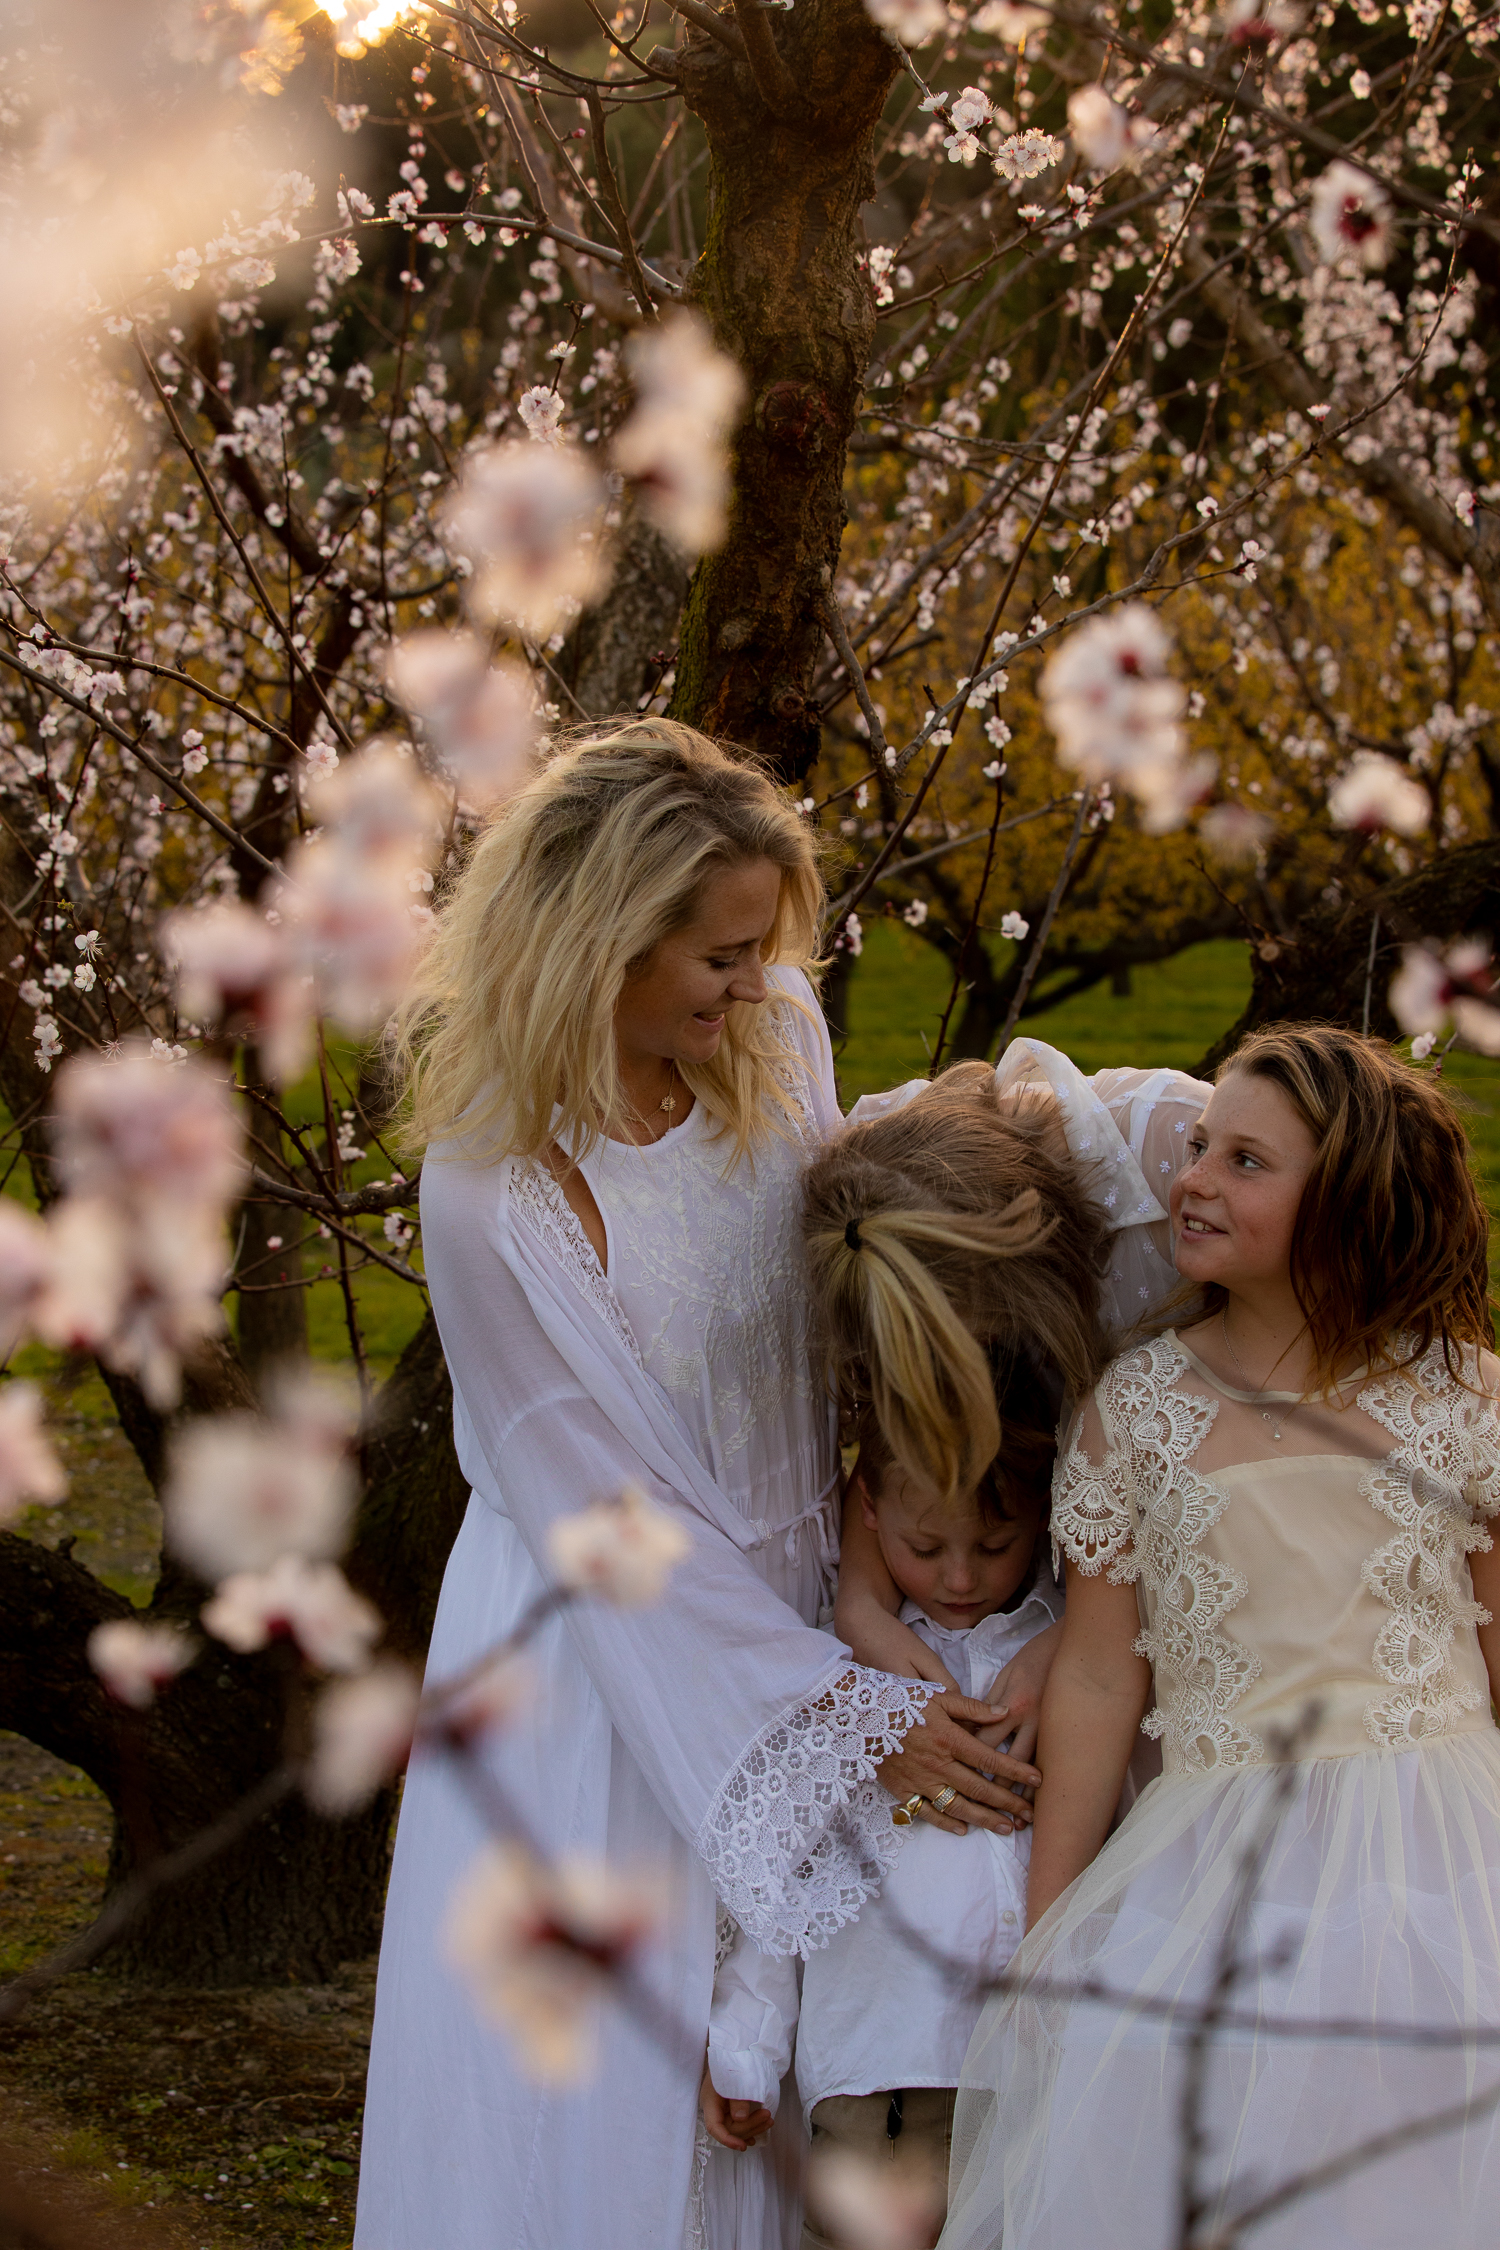 Hawkes-bay-photographer-at-sunset-in-orchard-in-the-blossoms-laughing-together-mother-with-her-children.jpg